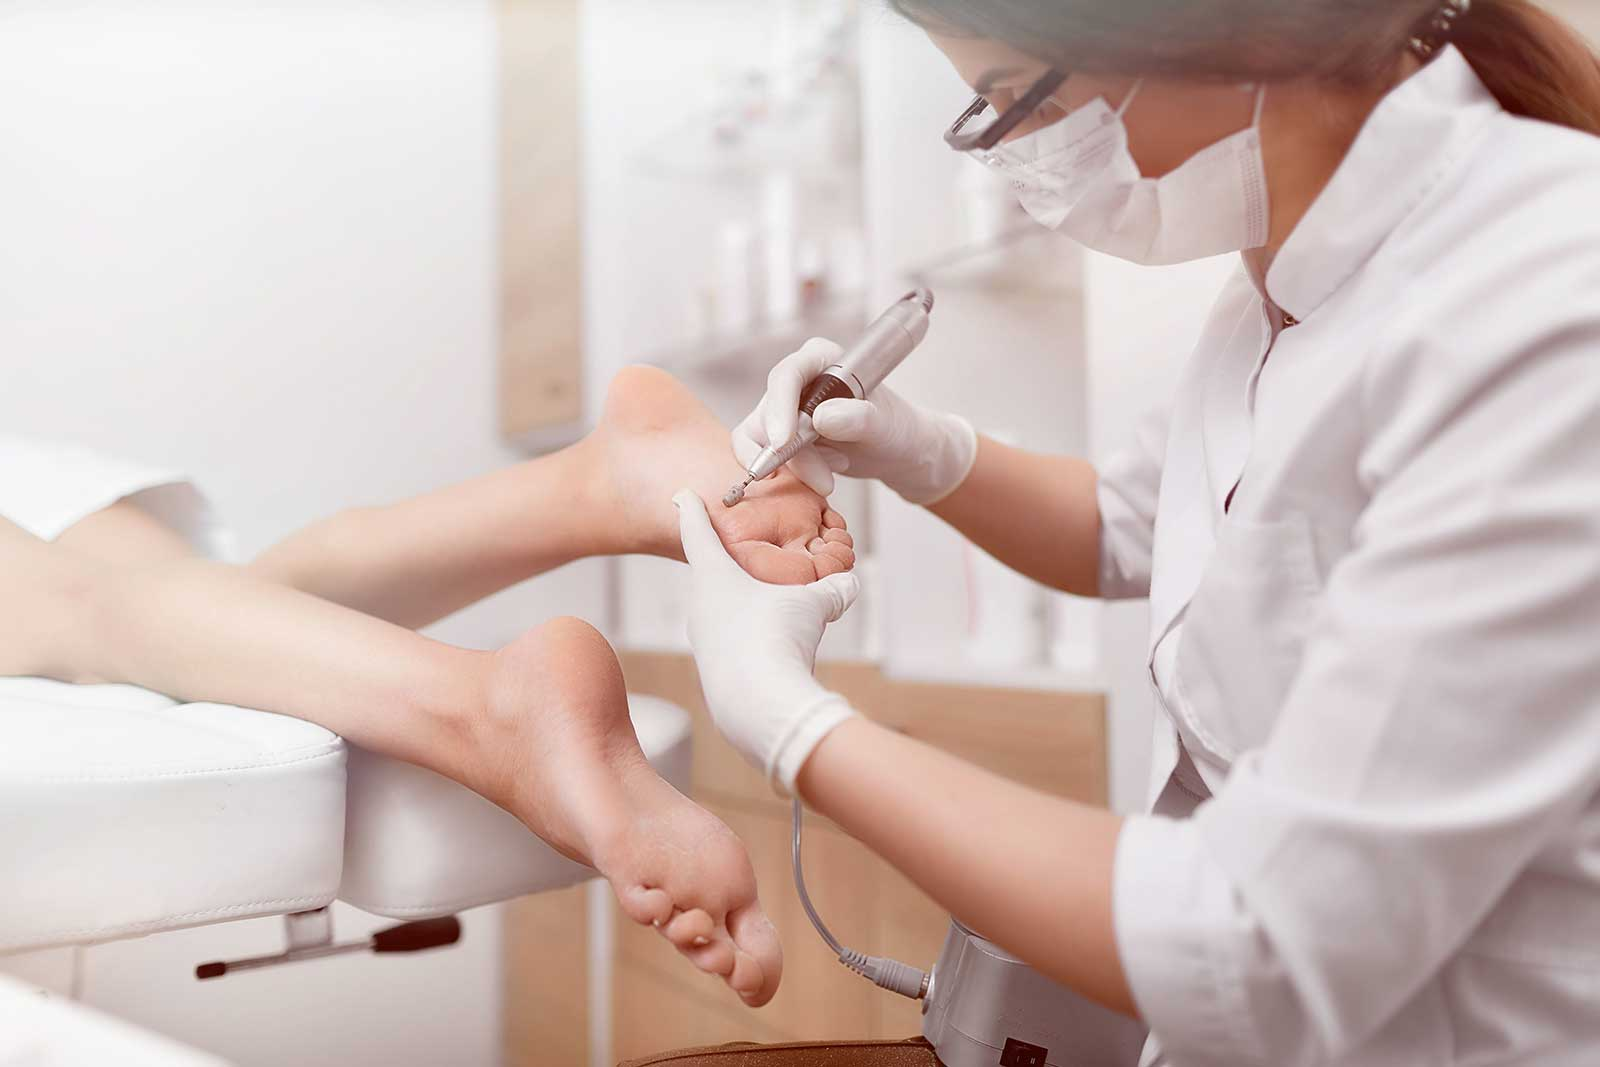 Foot Care and podiatry in Farnham Surrey